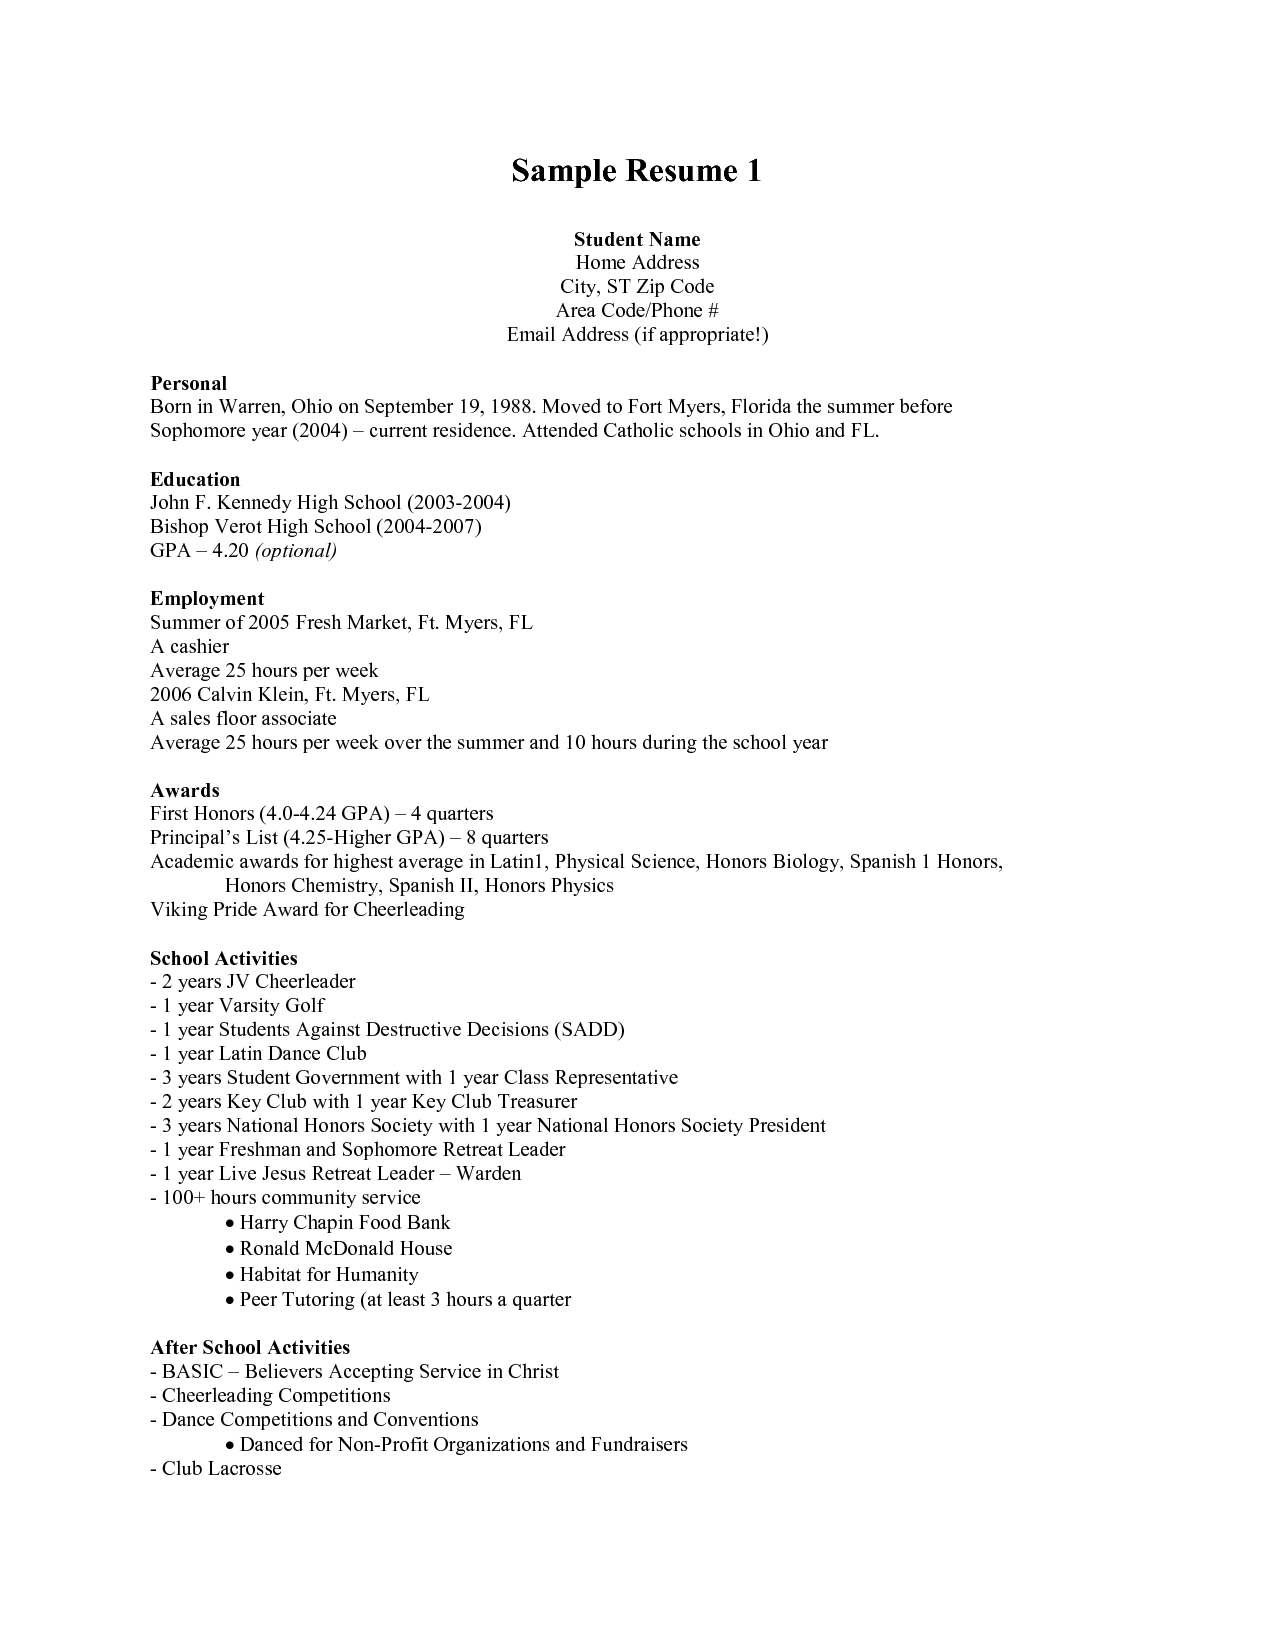 Cosmetology Student Cover Letter